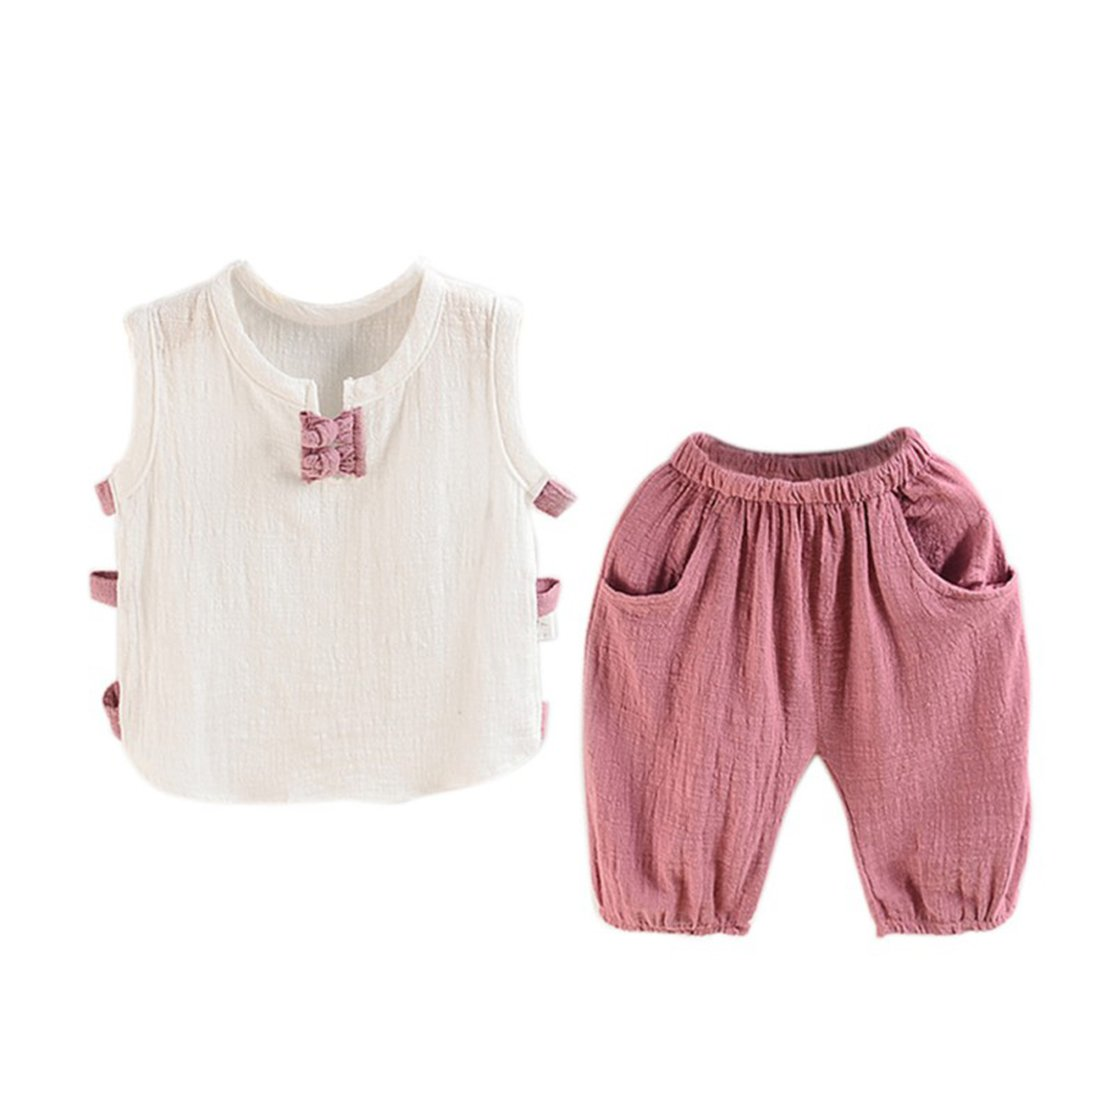 Shorts Top /& Pants Outfits daqinghjxg 2 Pcs Sets Baby Boys Suit Kids Sleeveless T-Shirt